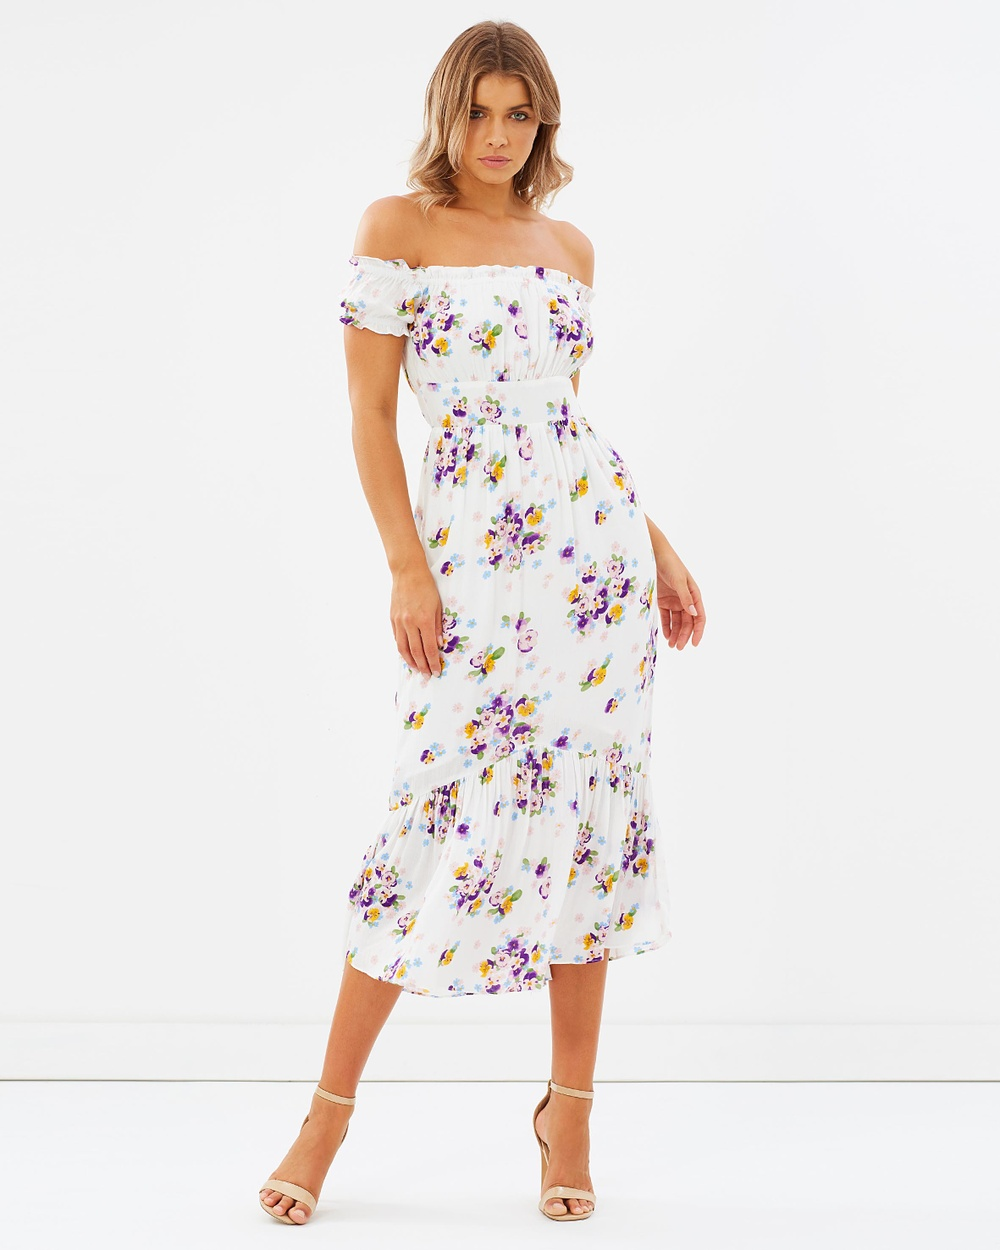 Atmos & Here ICONIC EXCLUSIVE Addilyn Off Shoulder Dress Printed Dresses Violette White Base ICONIC EXCLUSIVE Addilyn Off-Shoulder Dress